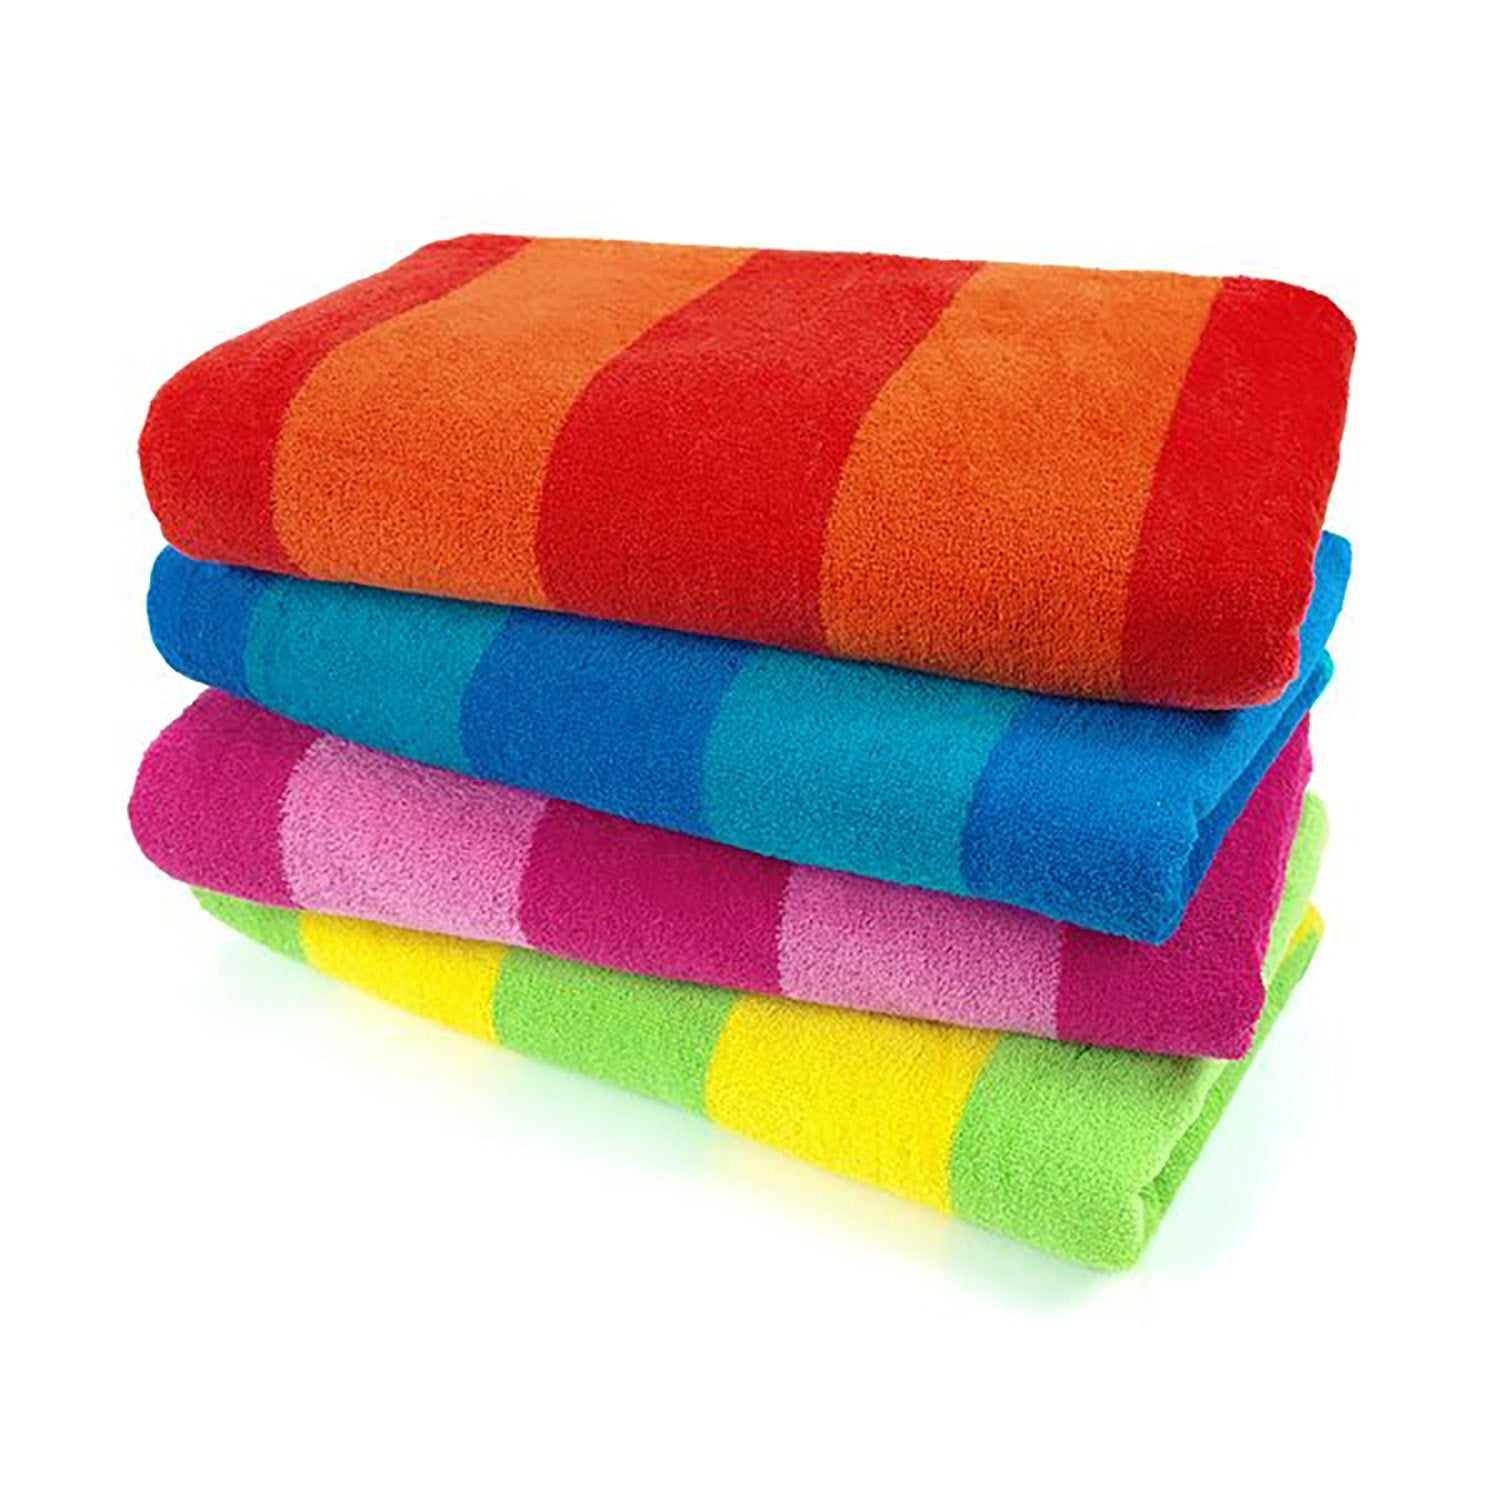 Exclusive Soft (27x54) Strips Bath Towel's-AN852